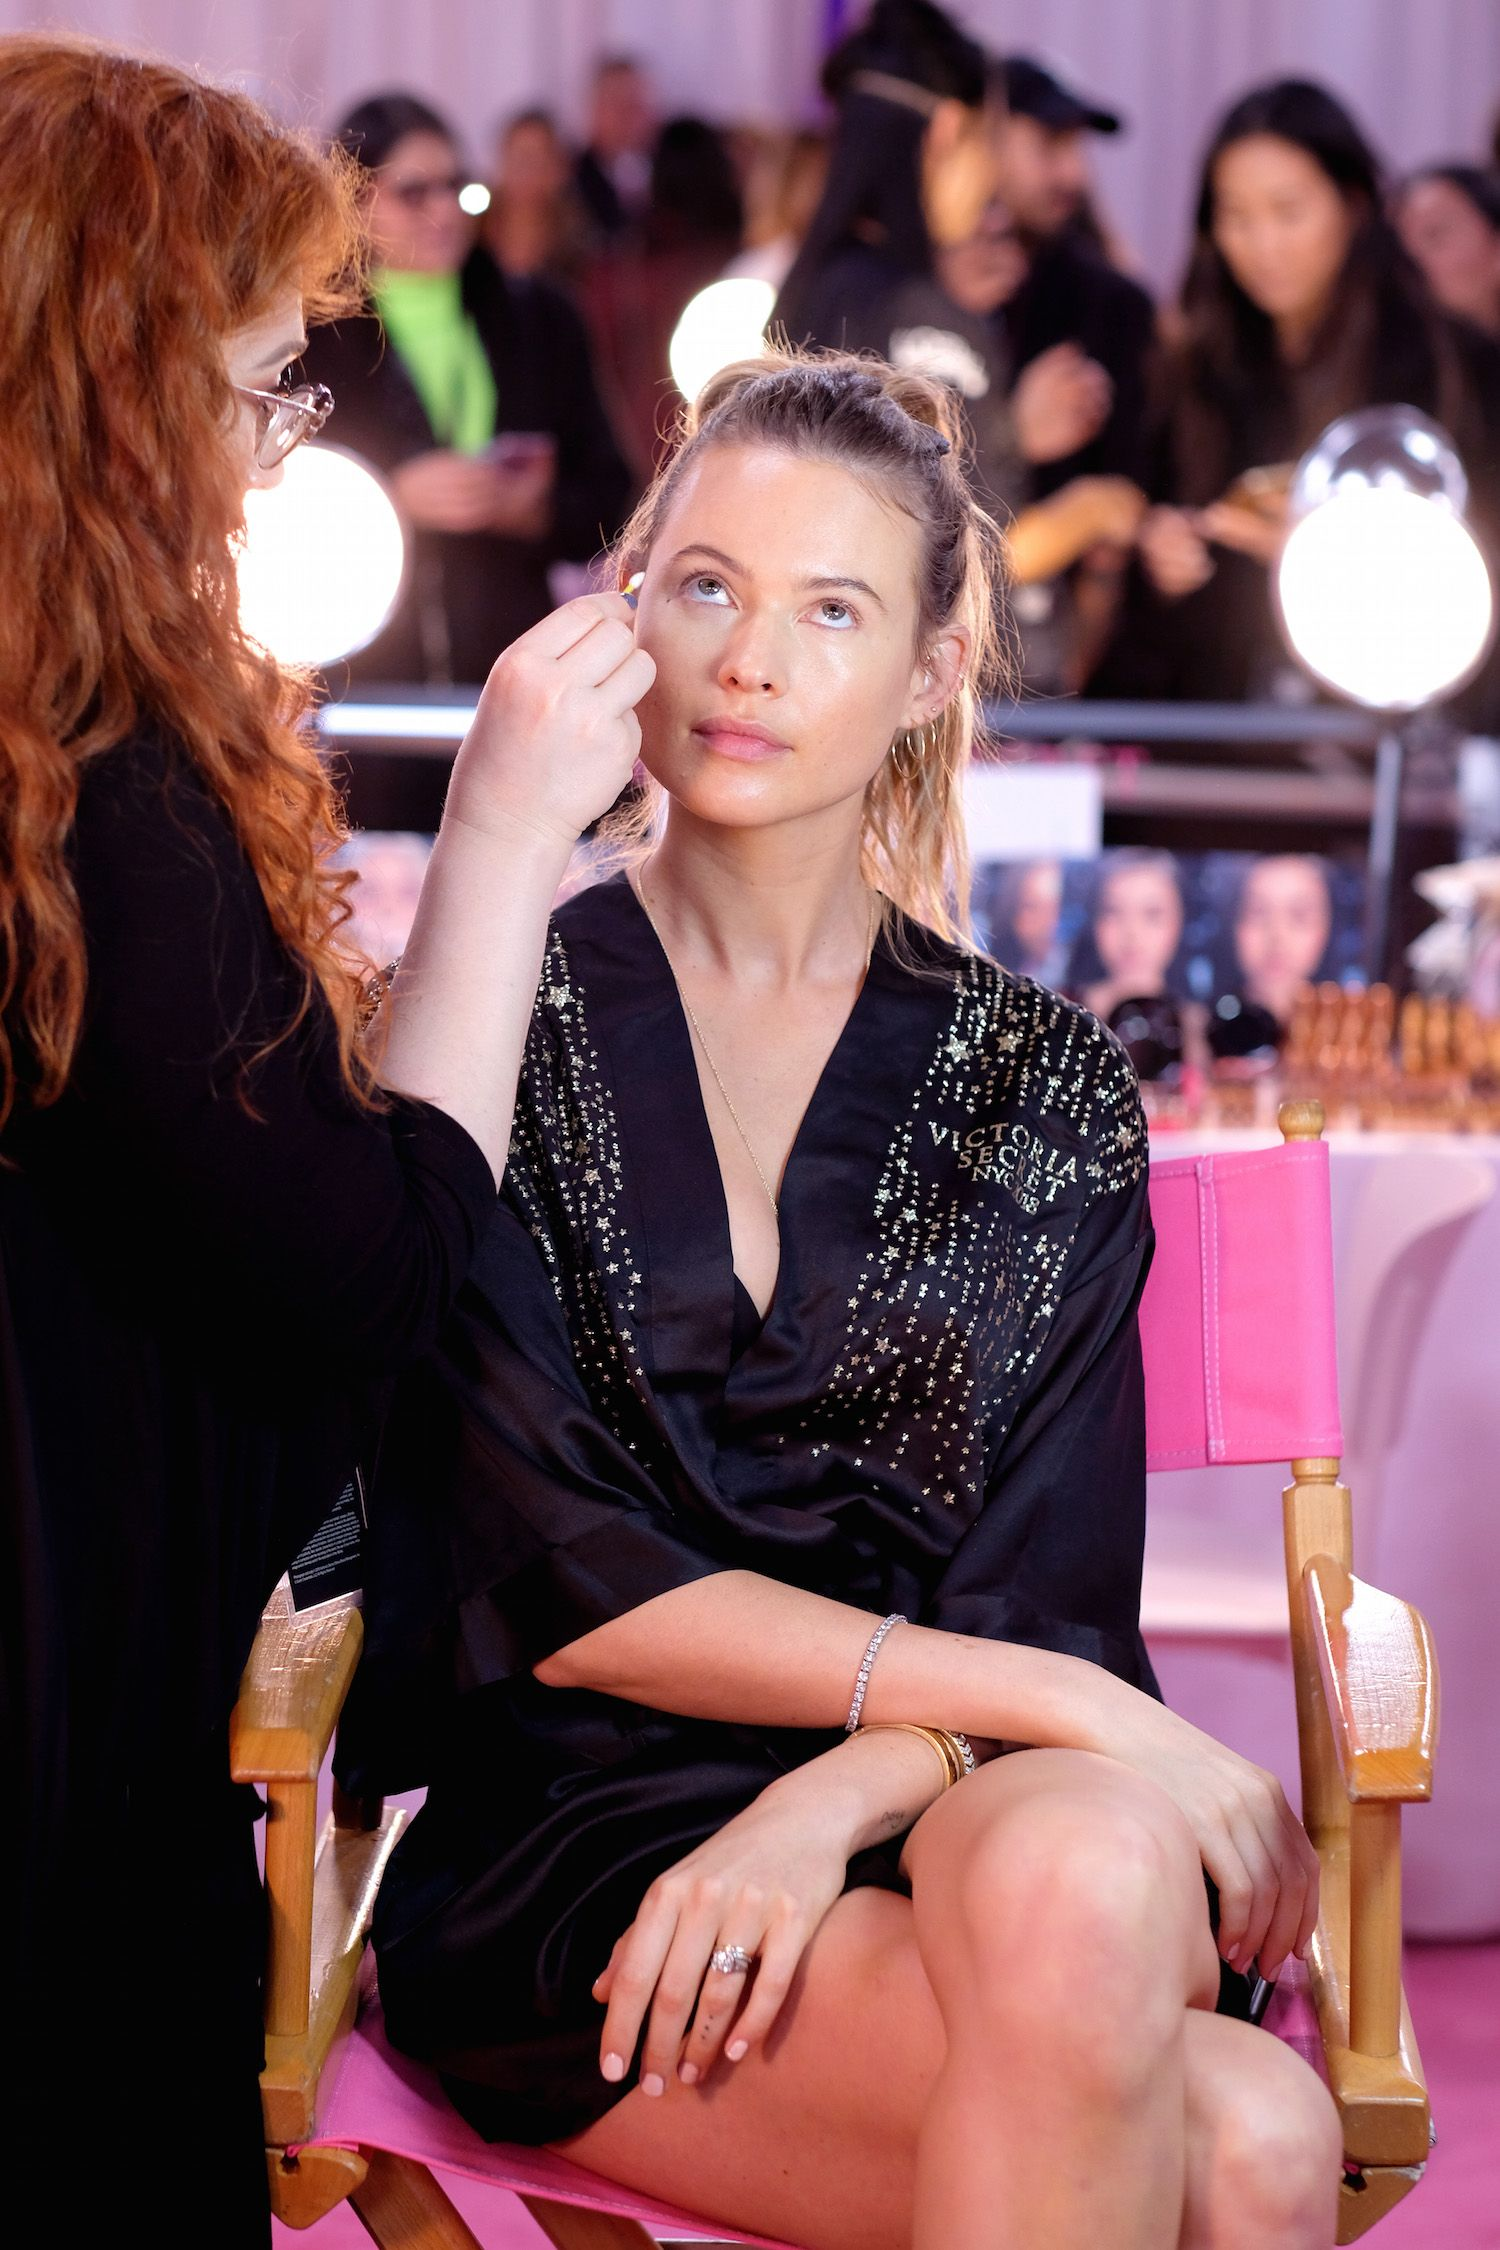 Victoria's Secret VS show make-up angels